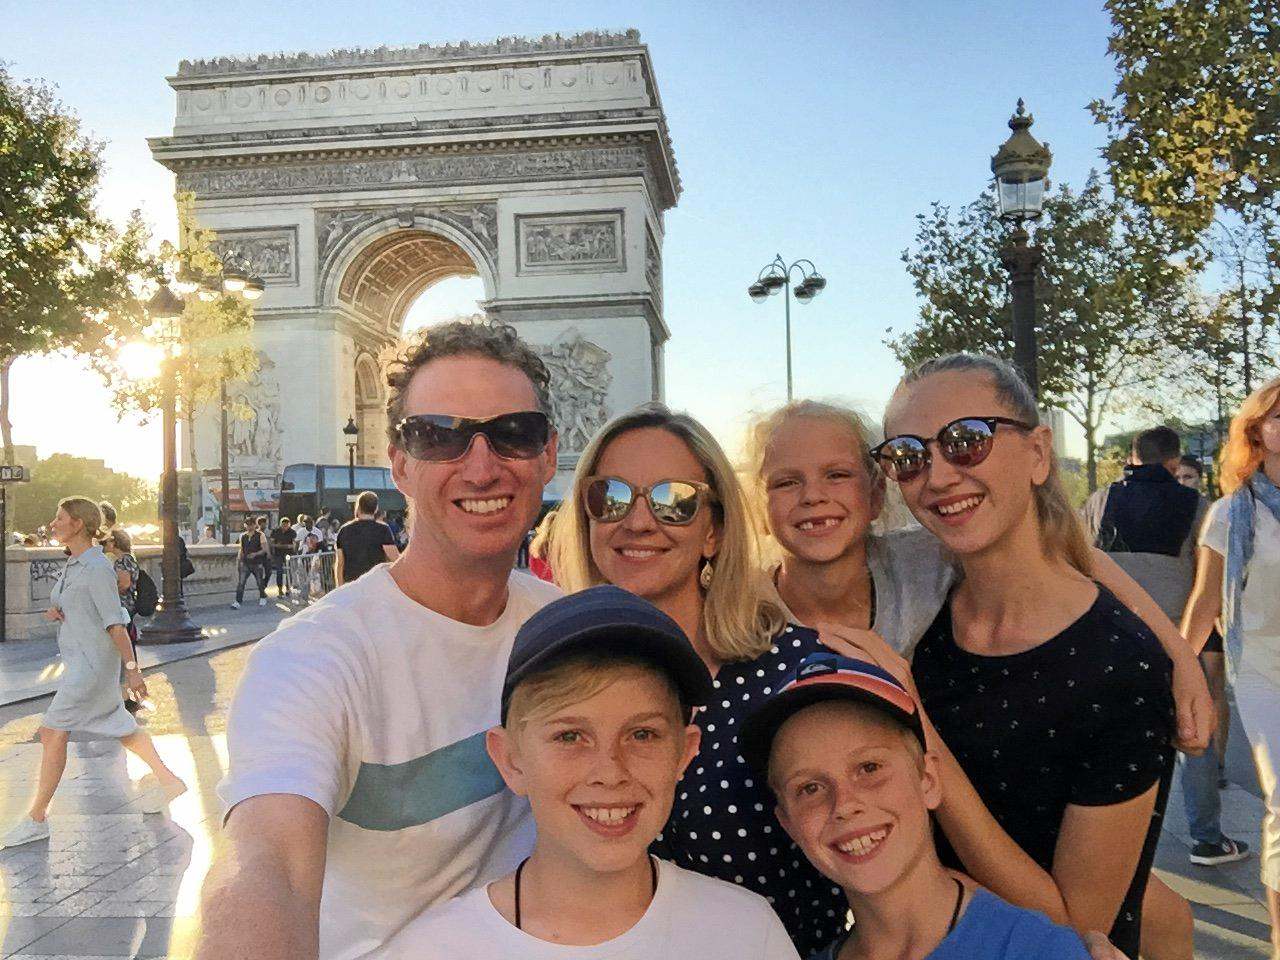 The Nicholl family at the Arc de Triomphe in Paris, France. From left to right is Nathan, Amaya (8), Kalia (16) and Beth. Front is Tide (12) and Rase (10).